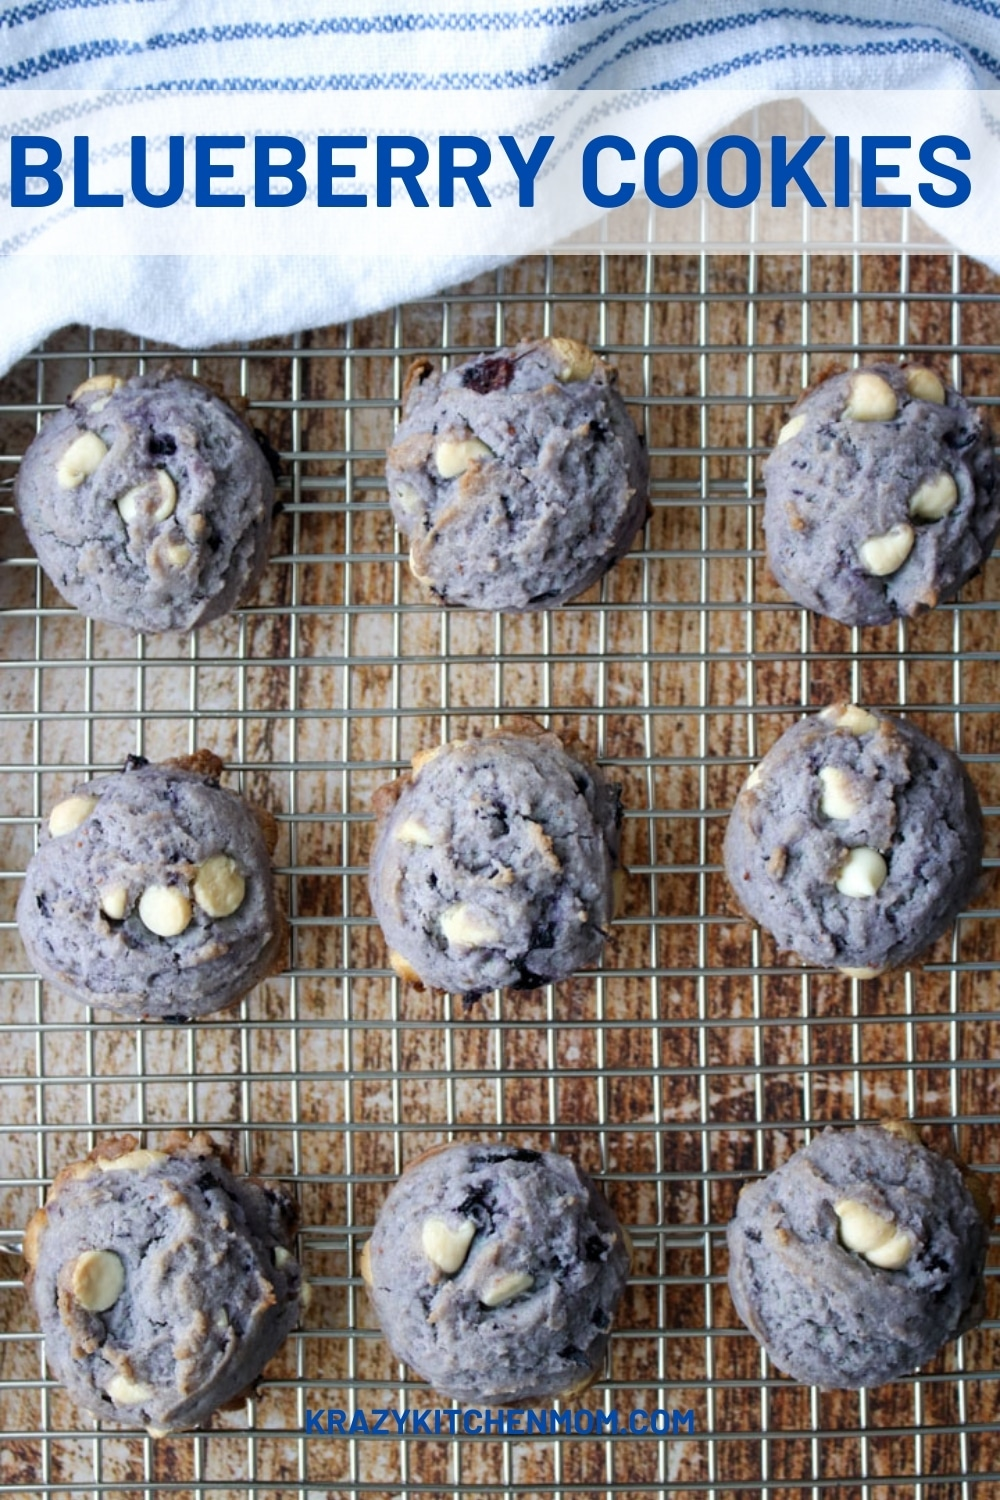 These Blueberry Cookies have gone viral on social media giant TikTok. People can't stop talking about them and for good reason. They are delicious! via @krazykitchenmom